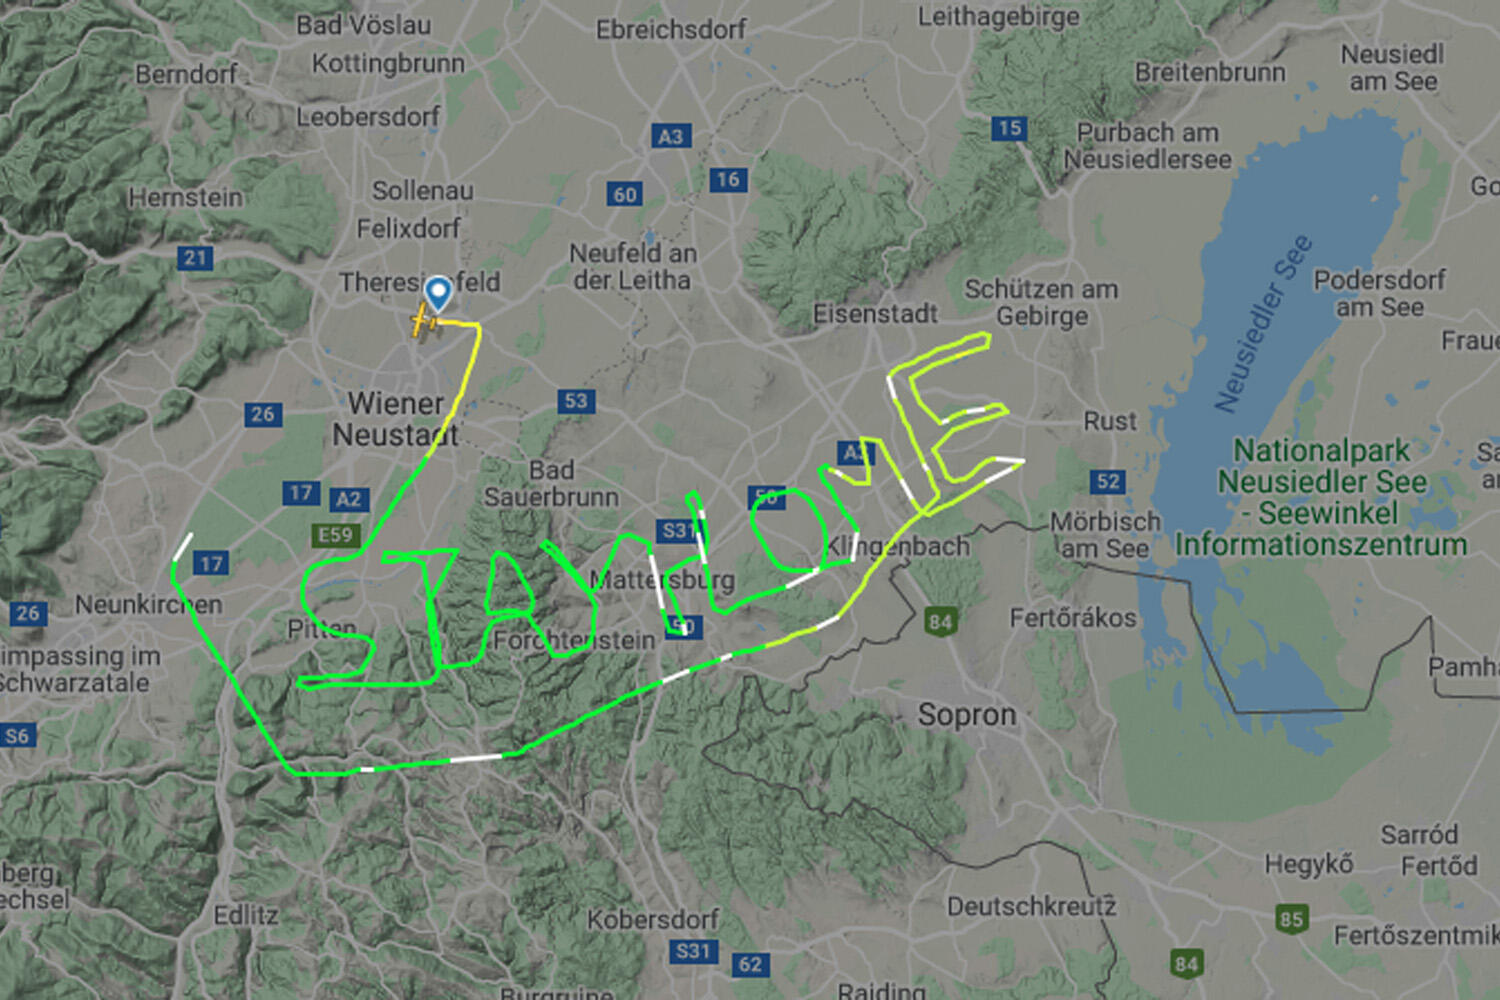 Flight tracker message